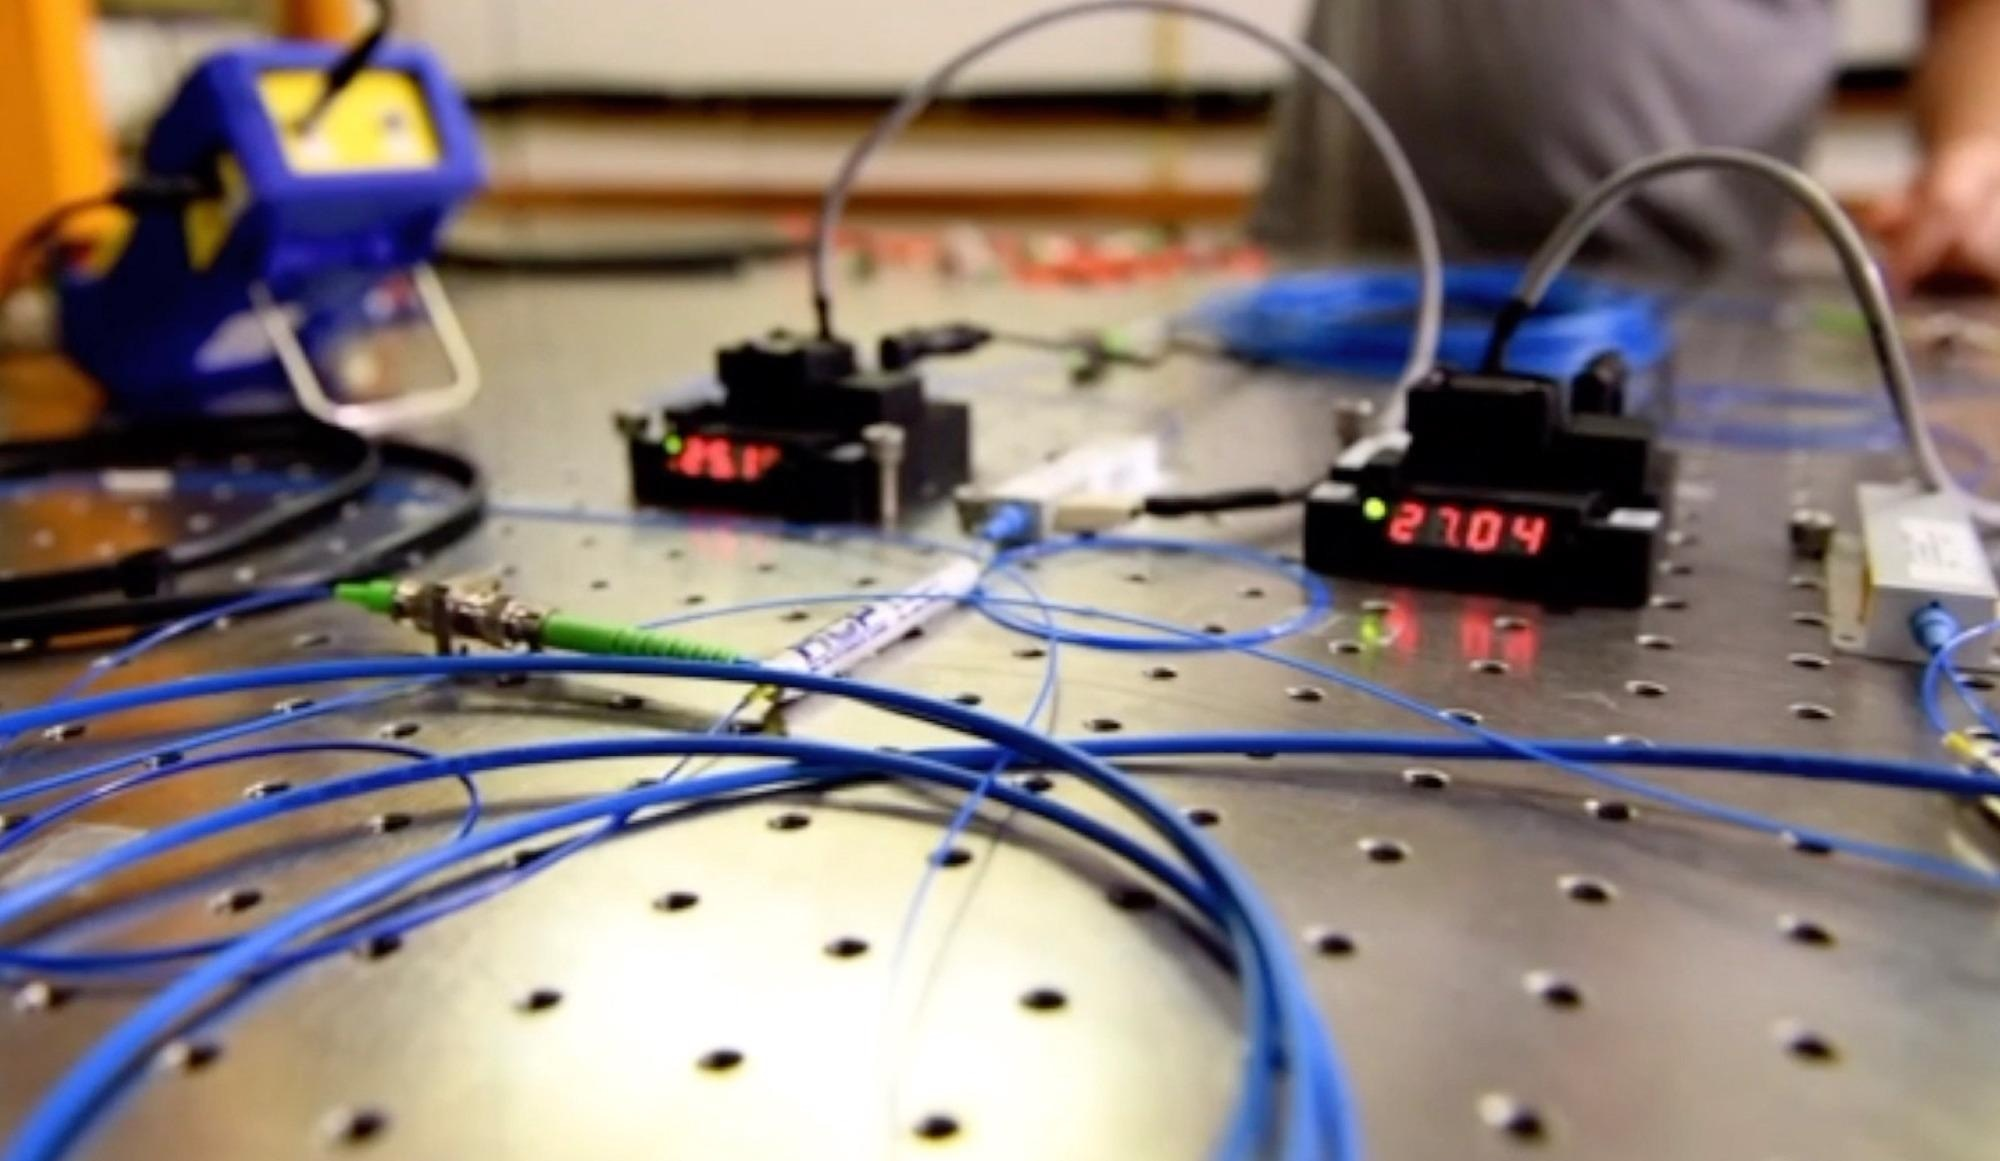 Researchers Demonstrate Sustained, Long-Distance Teleportation of Photon Qubits